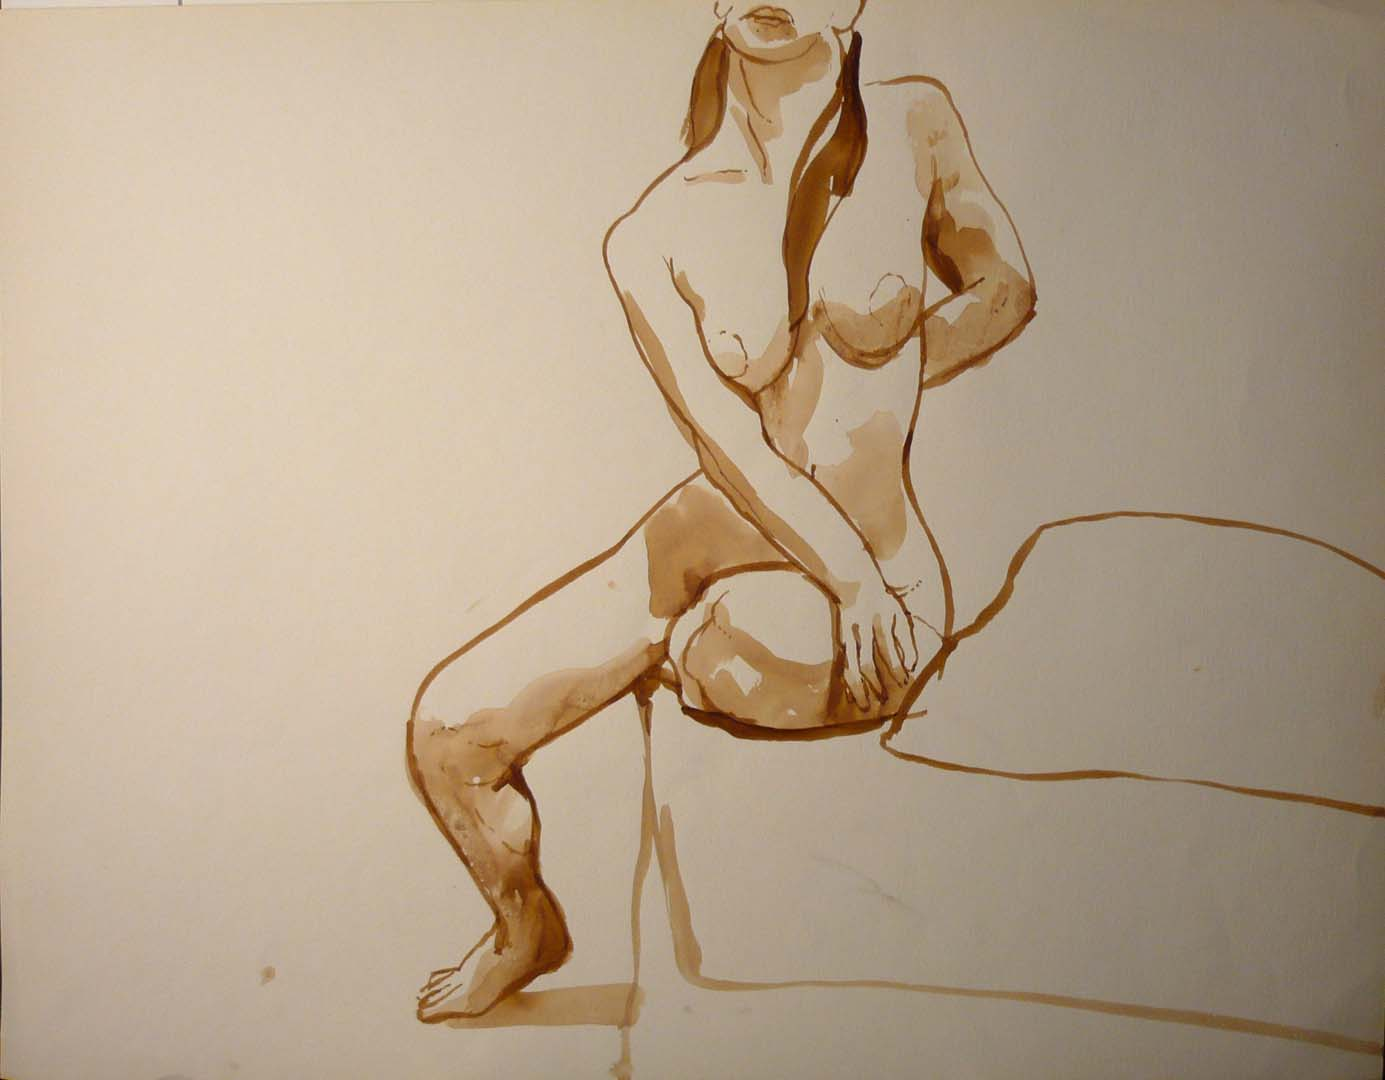 Seated Figure Sepia 19.875 x 25.875